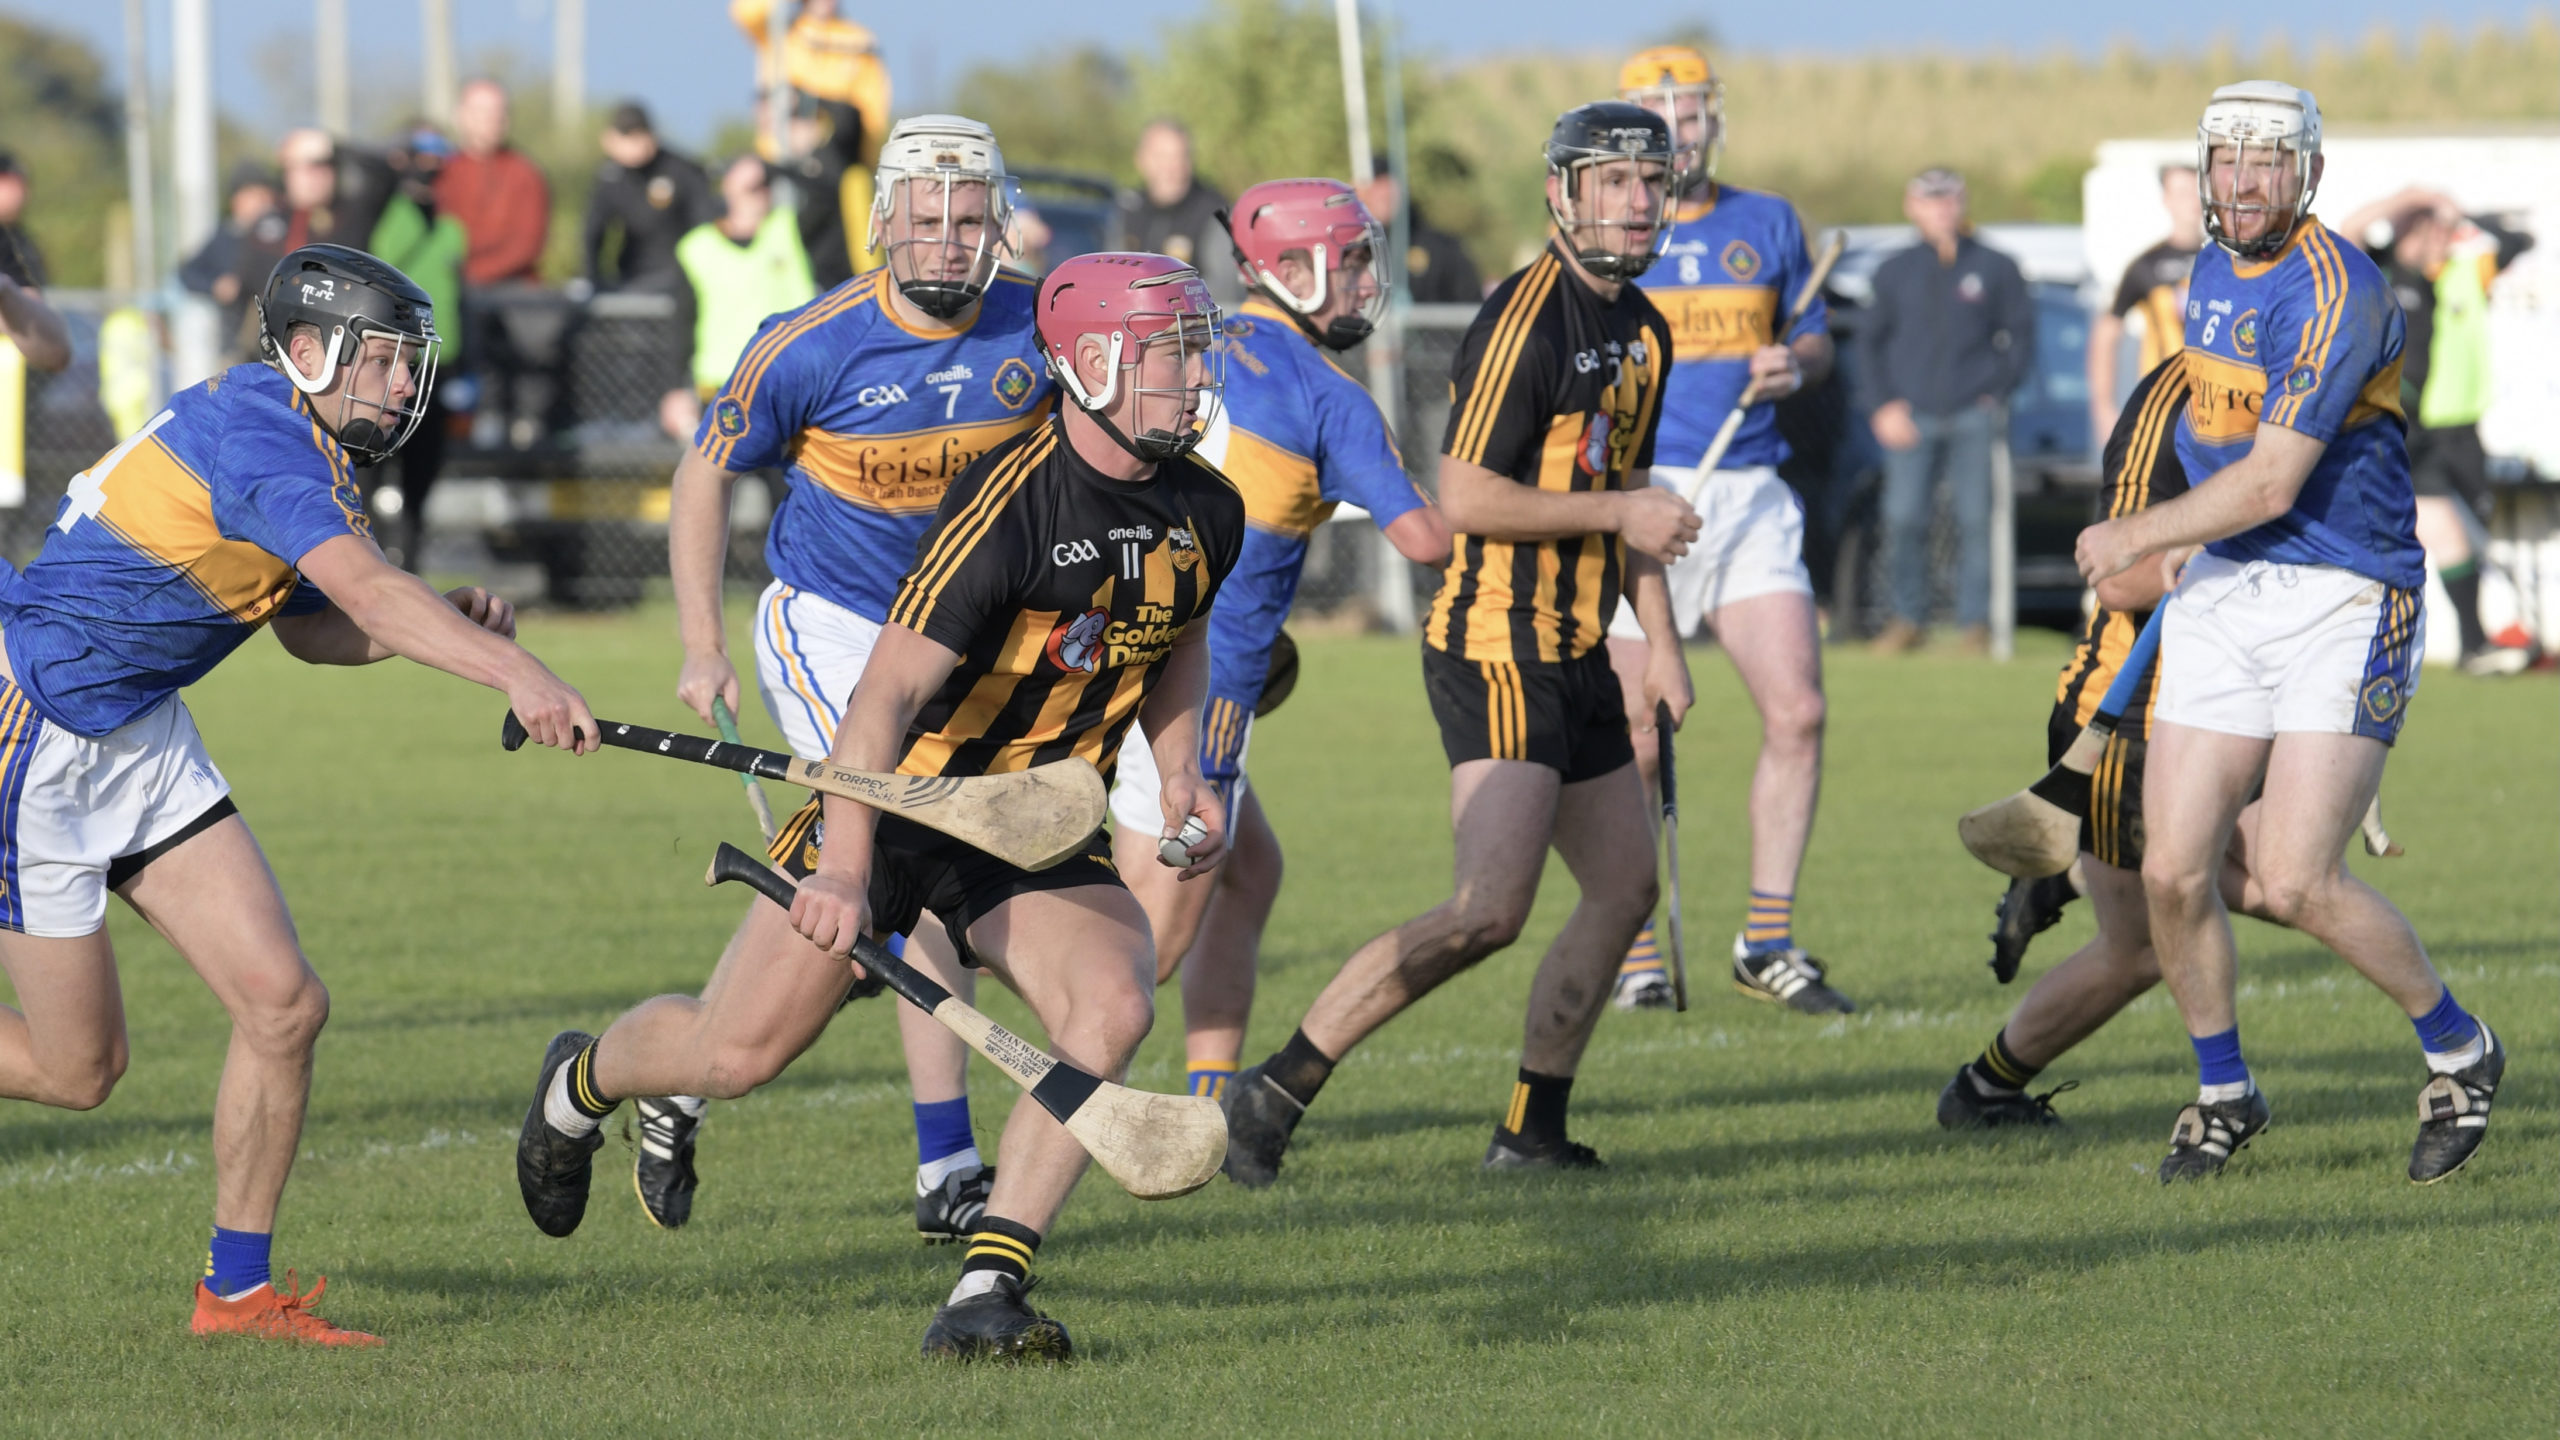 Down GAA SHC round 4 sees Ballycran take the win out of the wind